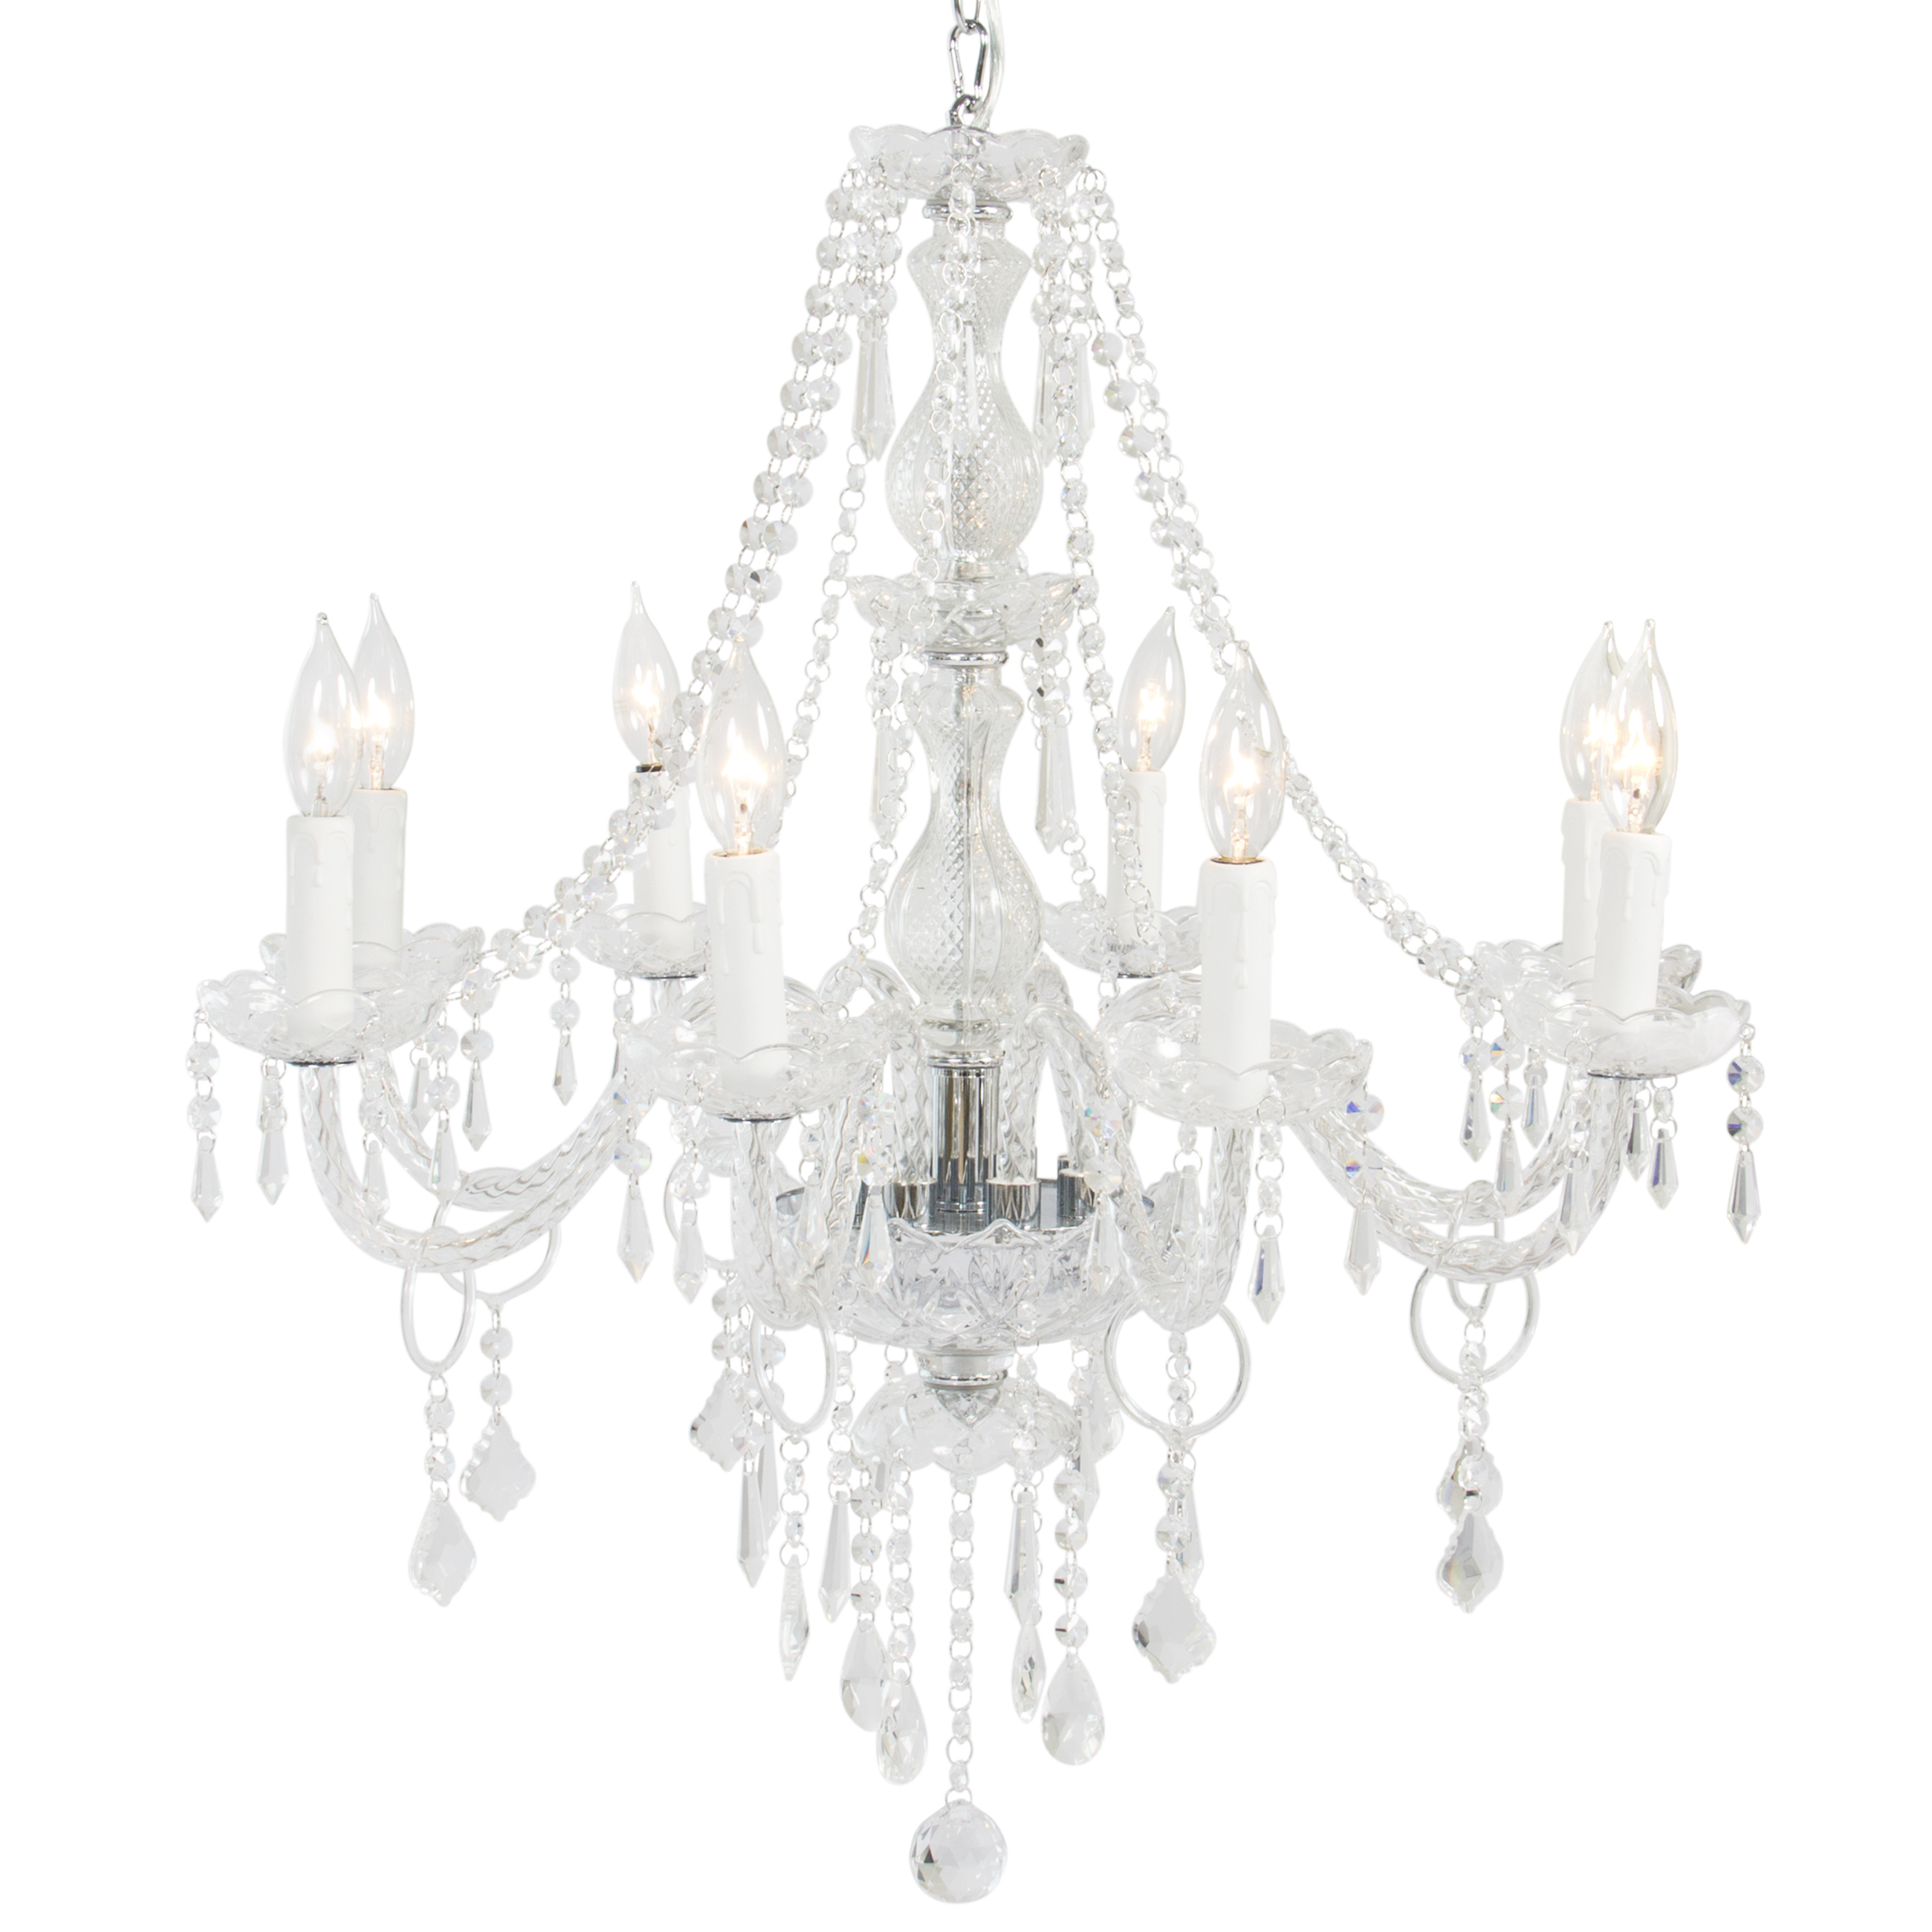 Click here to buy BCP Crystal Chandelier 8 Lights Pendant Glass Ceiling Lamp Center Lighting by SKY.